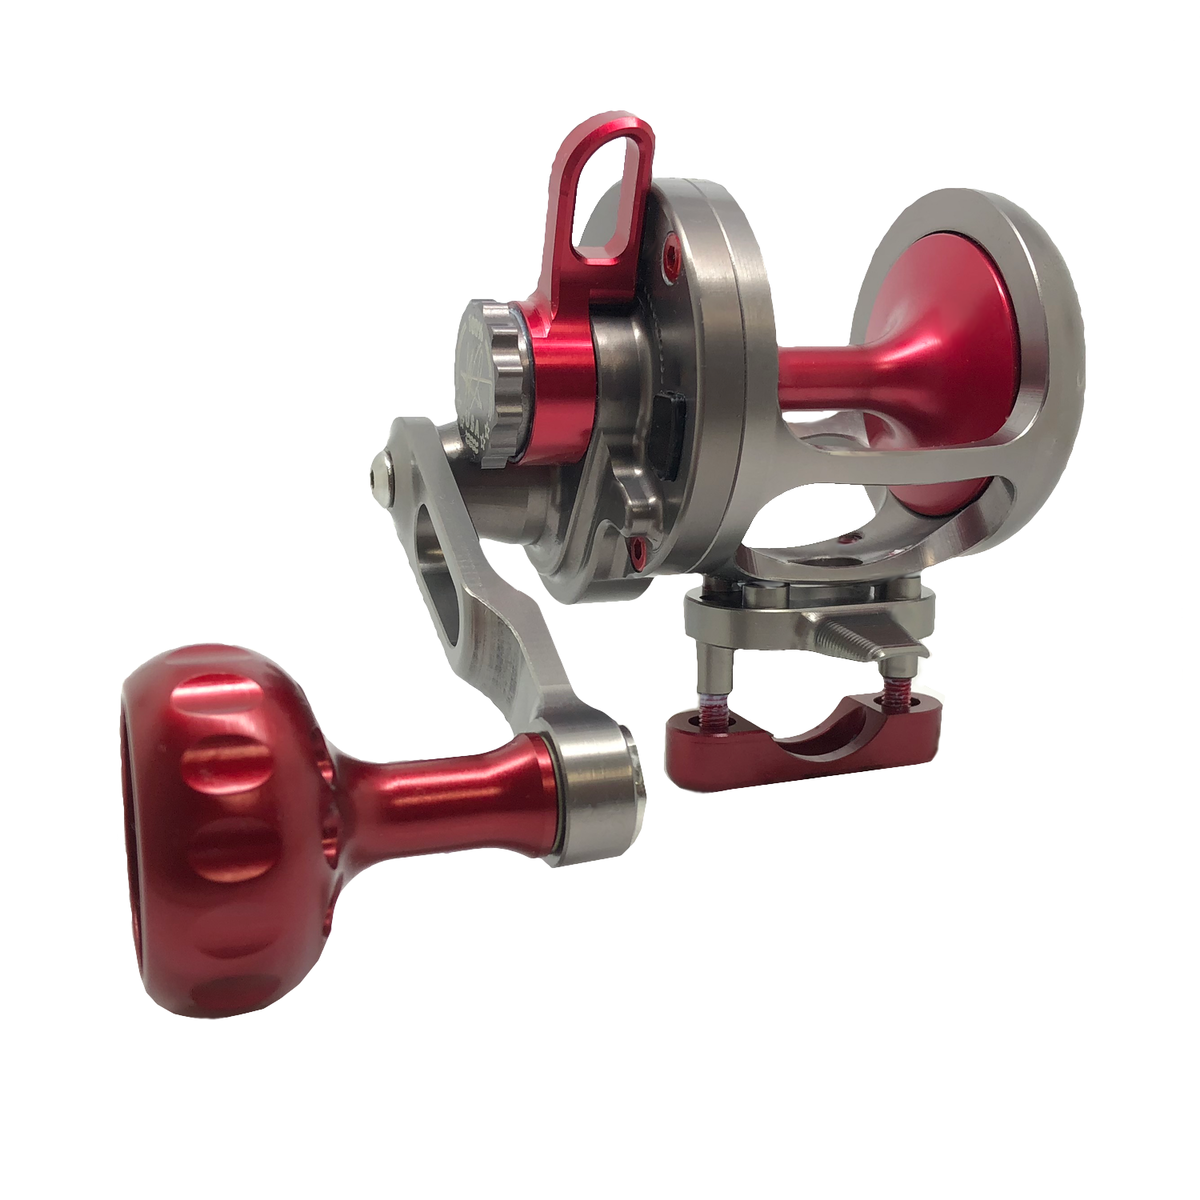 SEiGLER SG our original reel smoke and red accents. Made in USA machined aluminum reel made in Virginia Beach Va. Virginia is for Lovers!